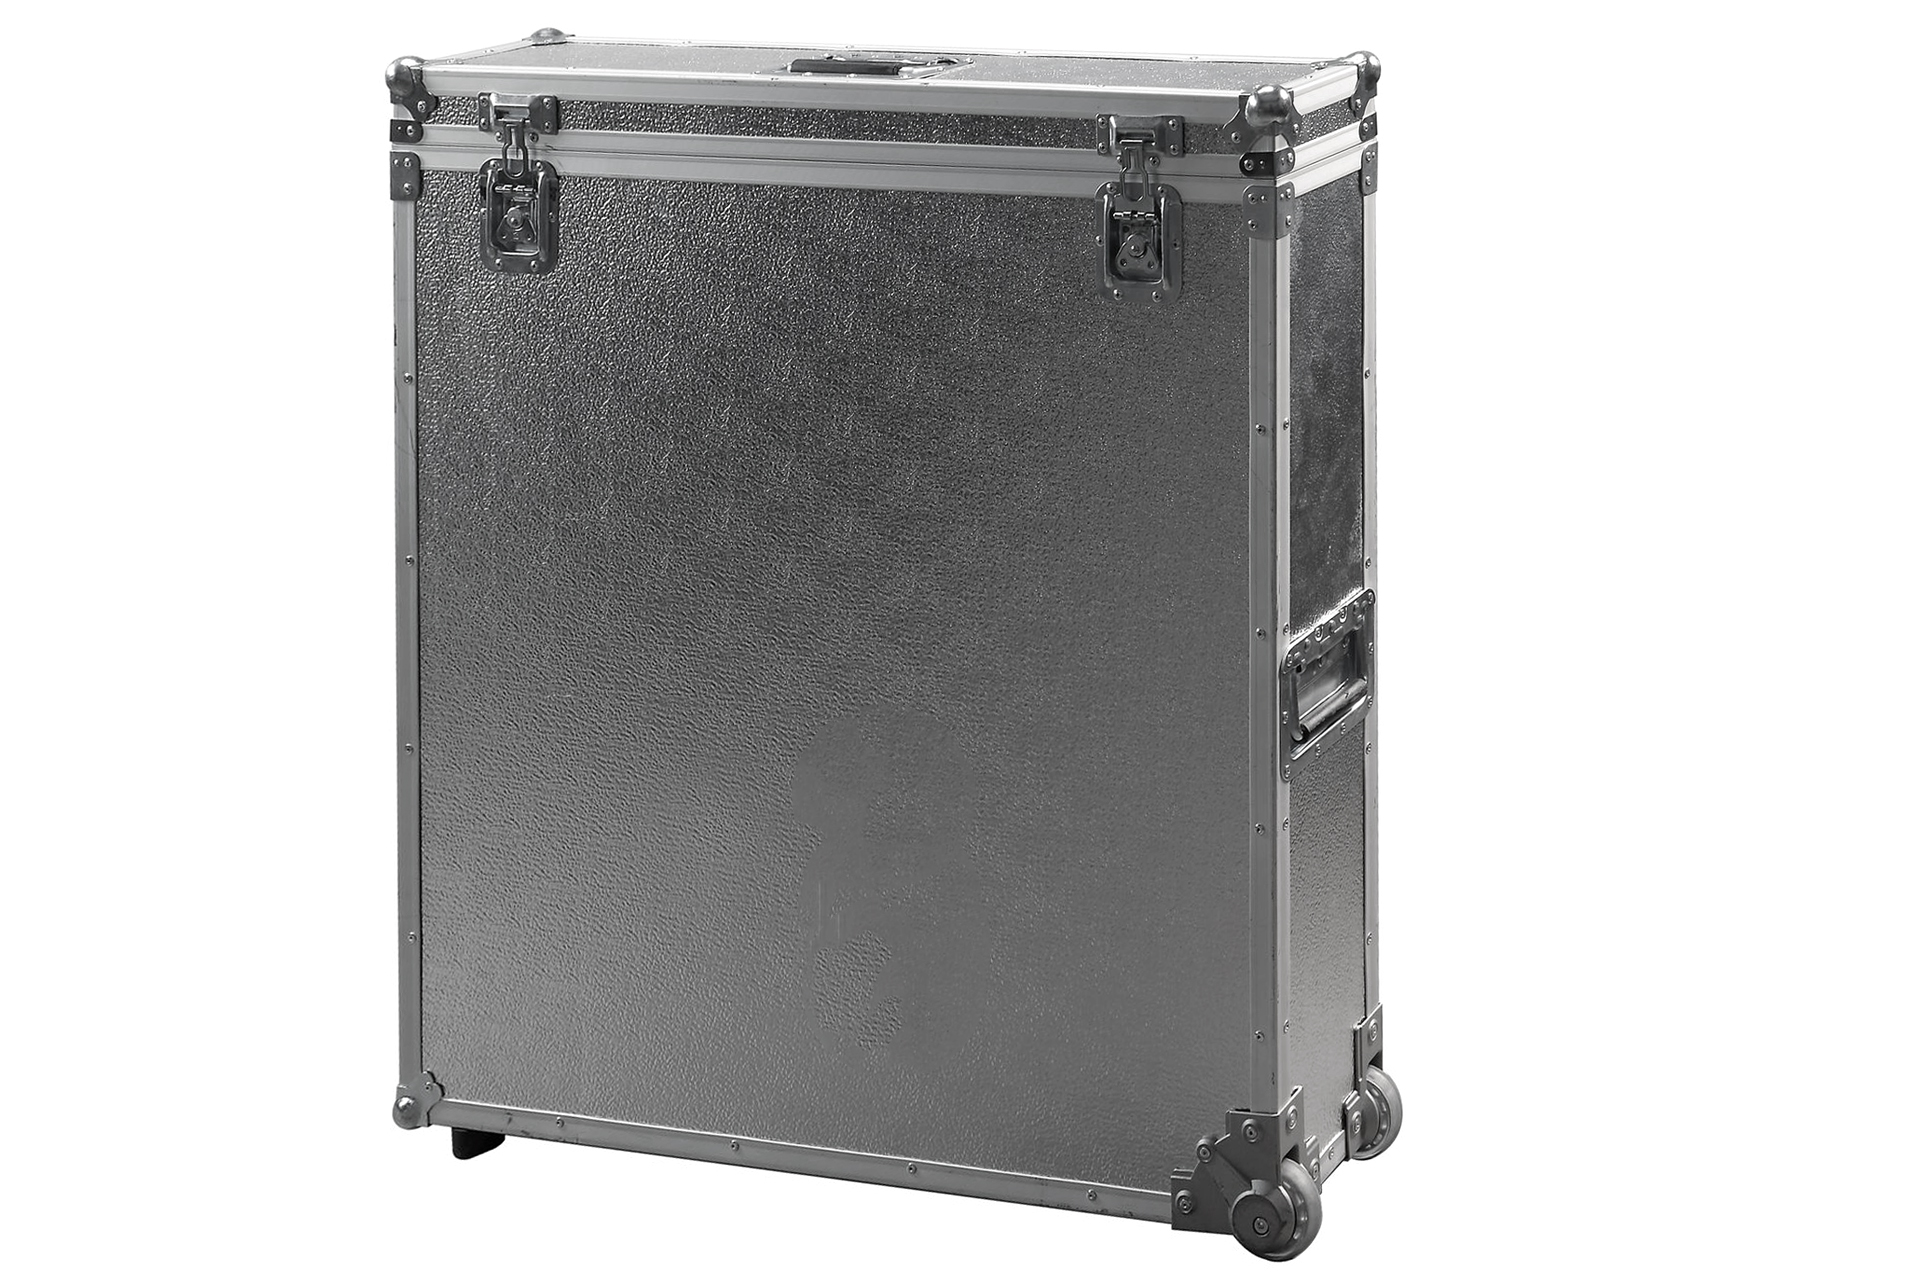 VELVET 2x2 flight case